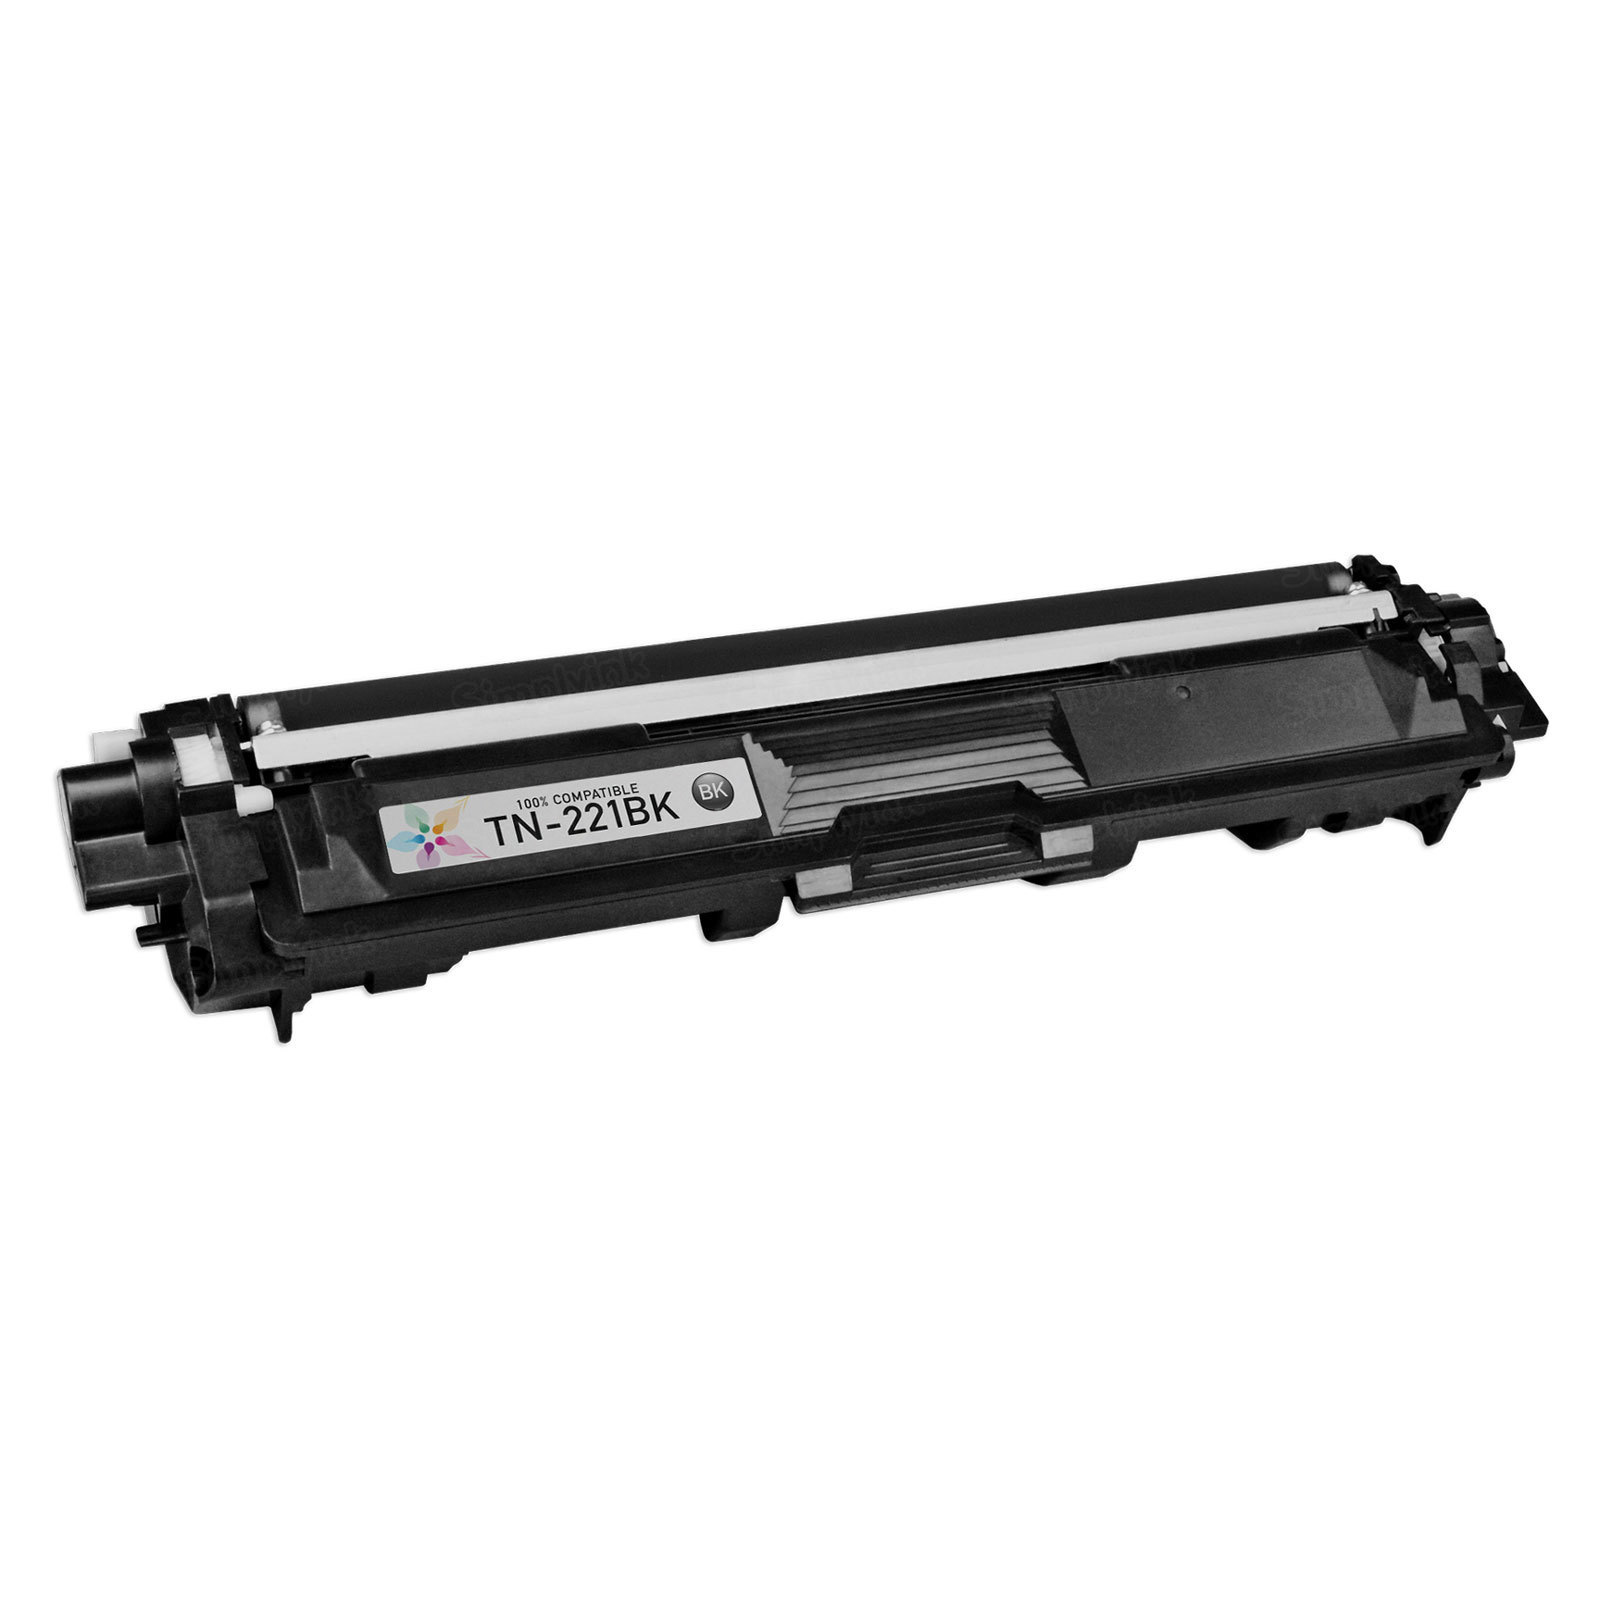 Compatible TN221BK Black Toner Cartridge for Brother